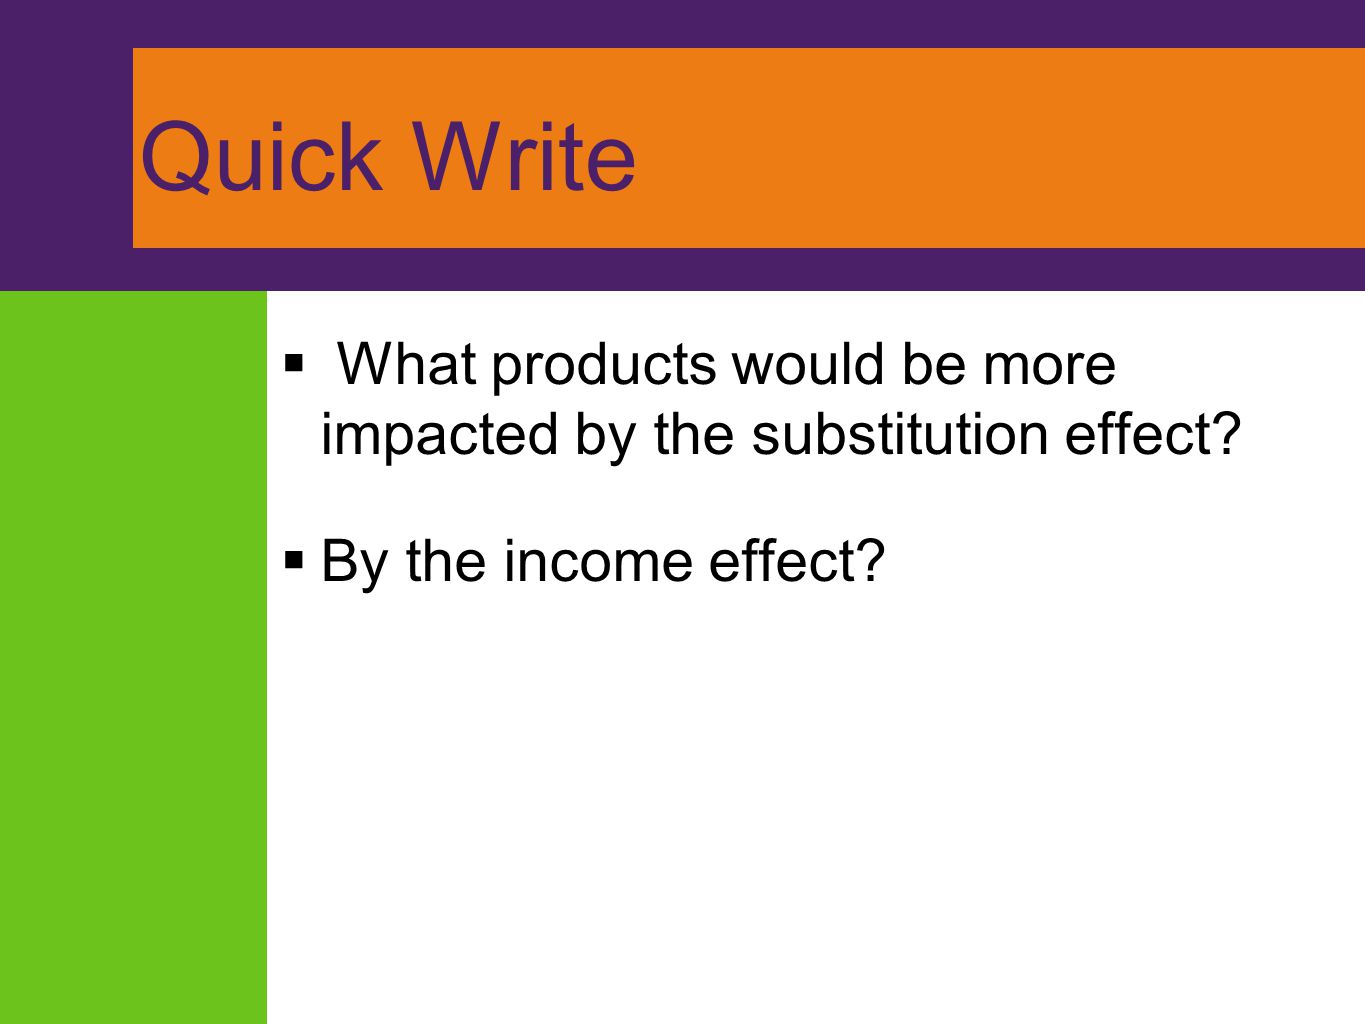 Quick Write What products would be more impacted by the substitution effect By the income effect